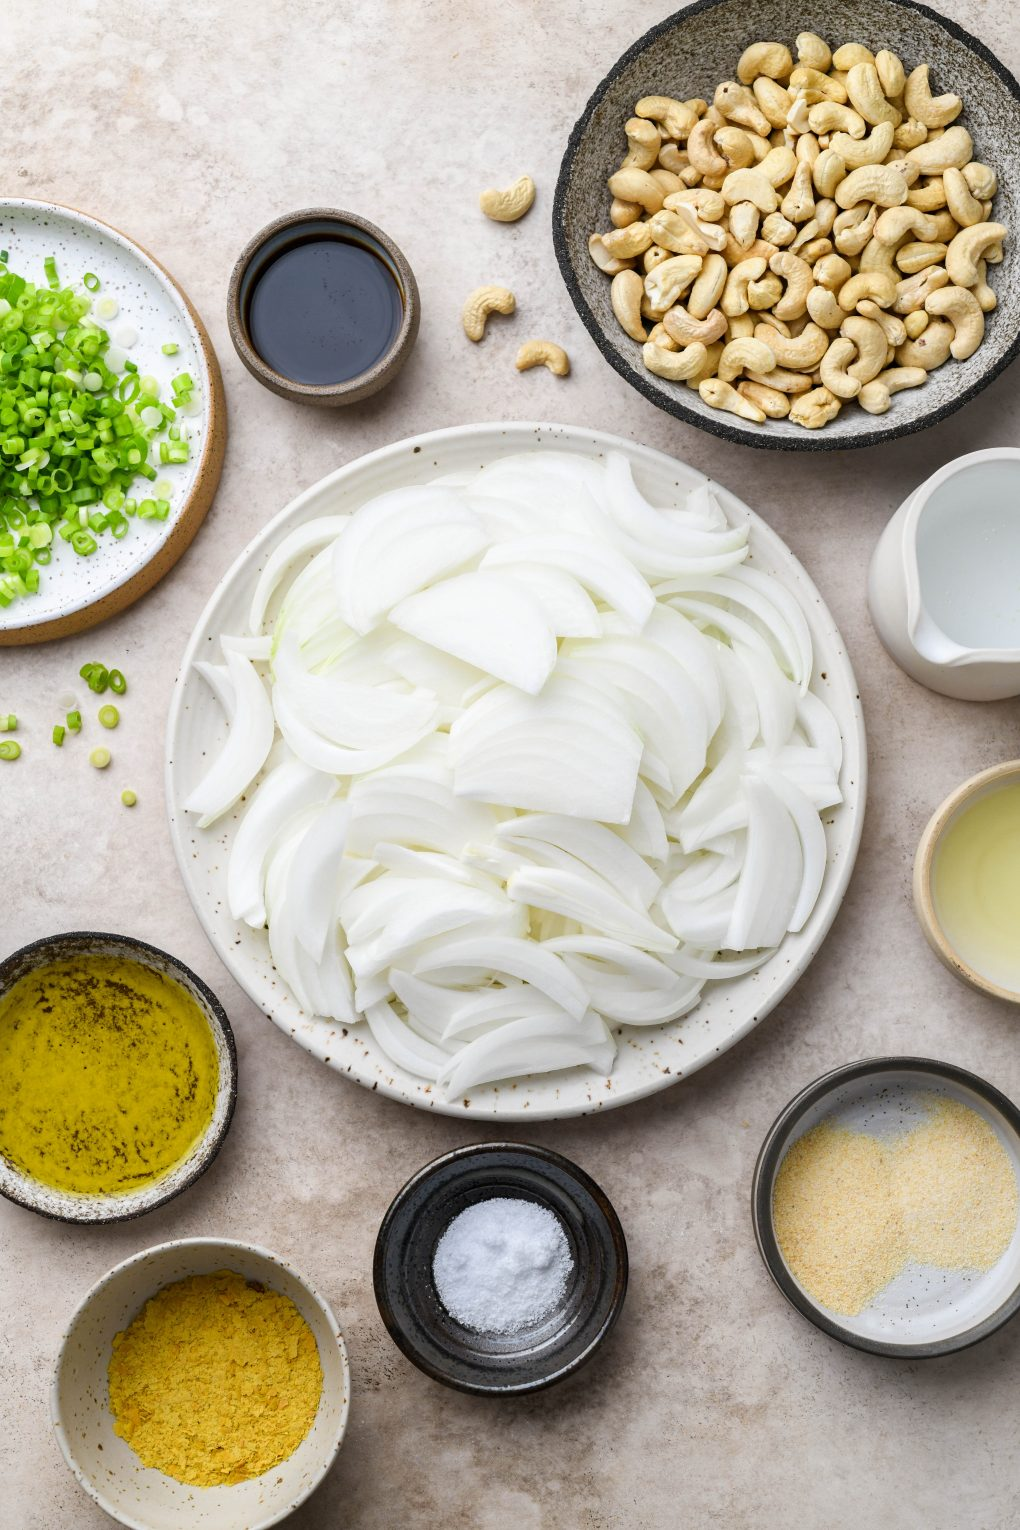 Image of all the ingredients needed to make dairy free french onion dip - thinly sliced onion, raw cashews, green onion, spices, water, lemon juice, and coconut aminos. On a light brown background.